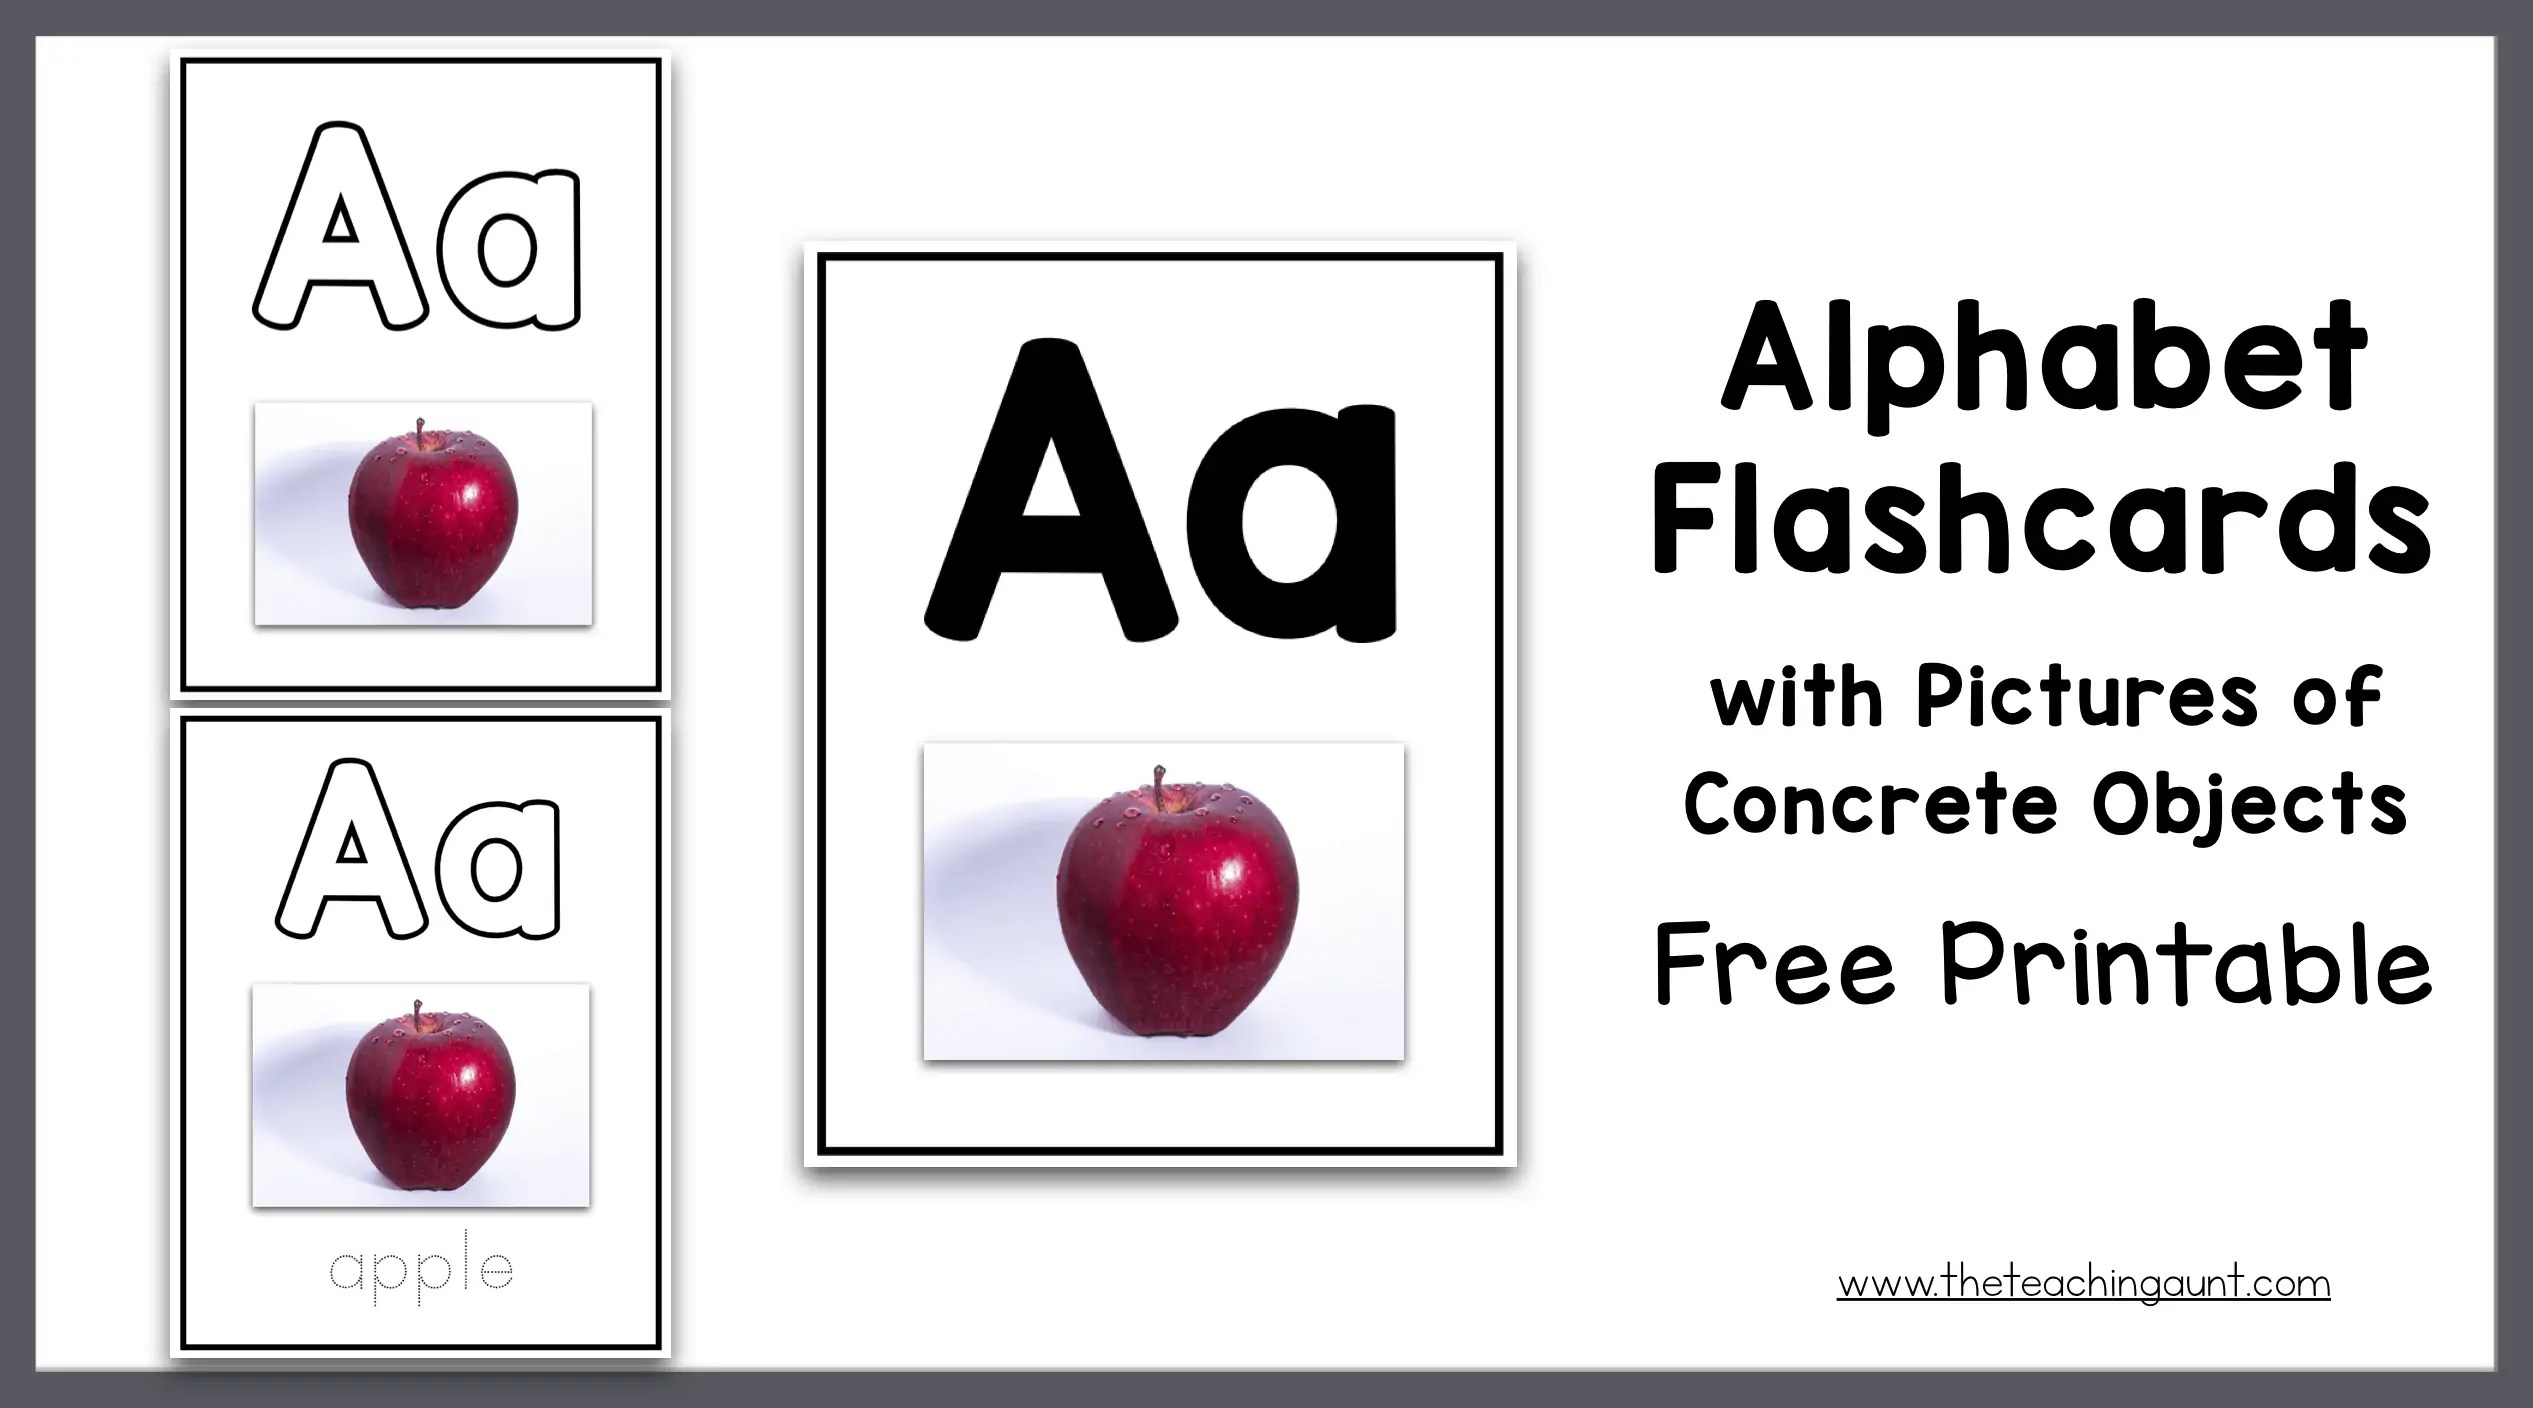 image relating to Alphabet Cards Printable named Alphabet Flashcards with Pics of Concrete Things - The